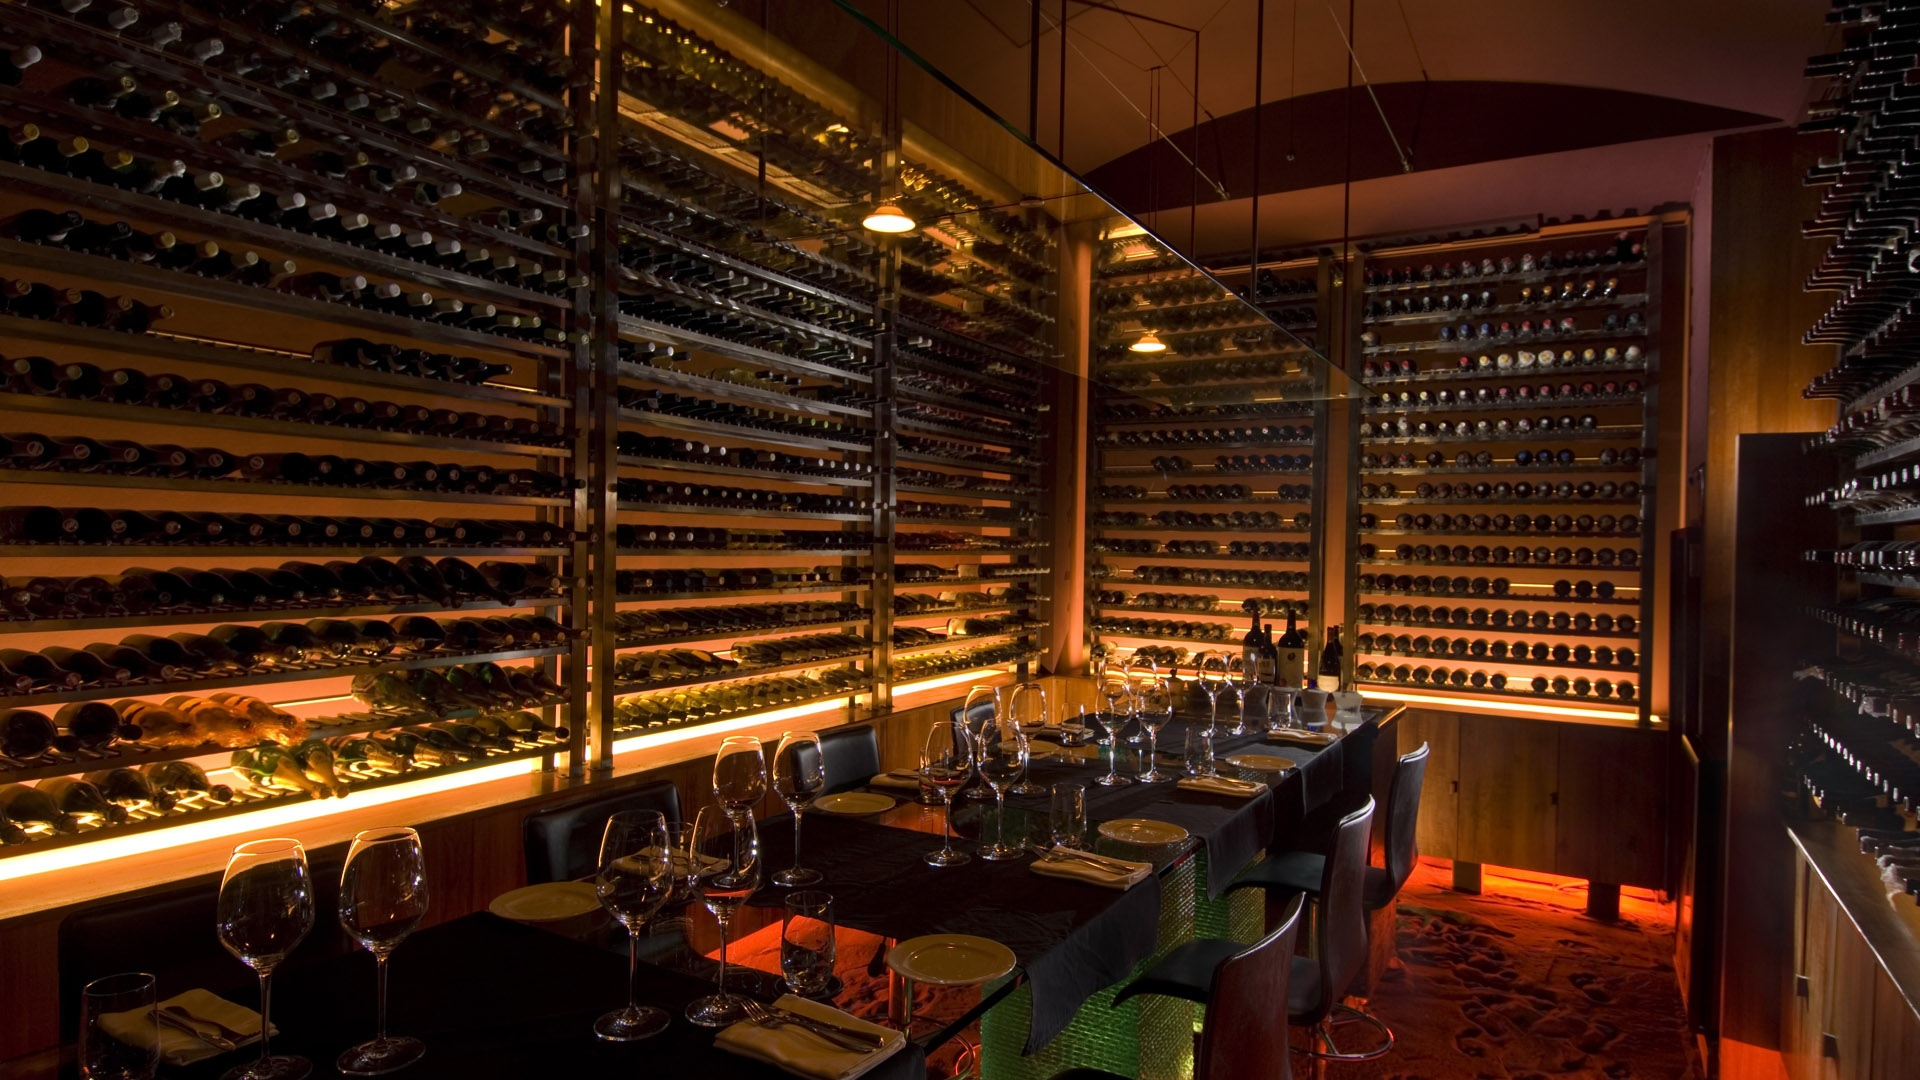 download wallpaper 1920x1080 cafe, restaurant, wine, wine racks